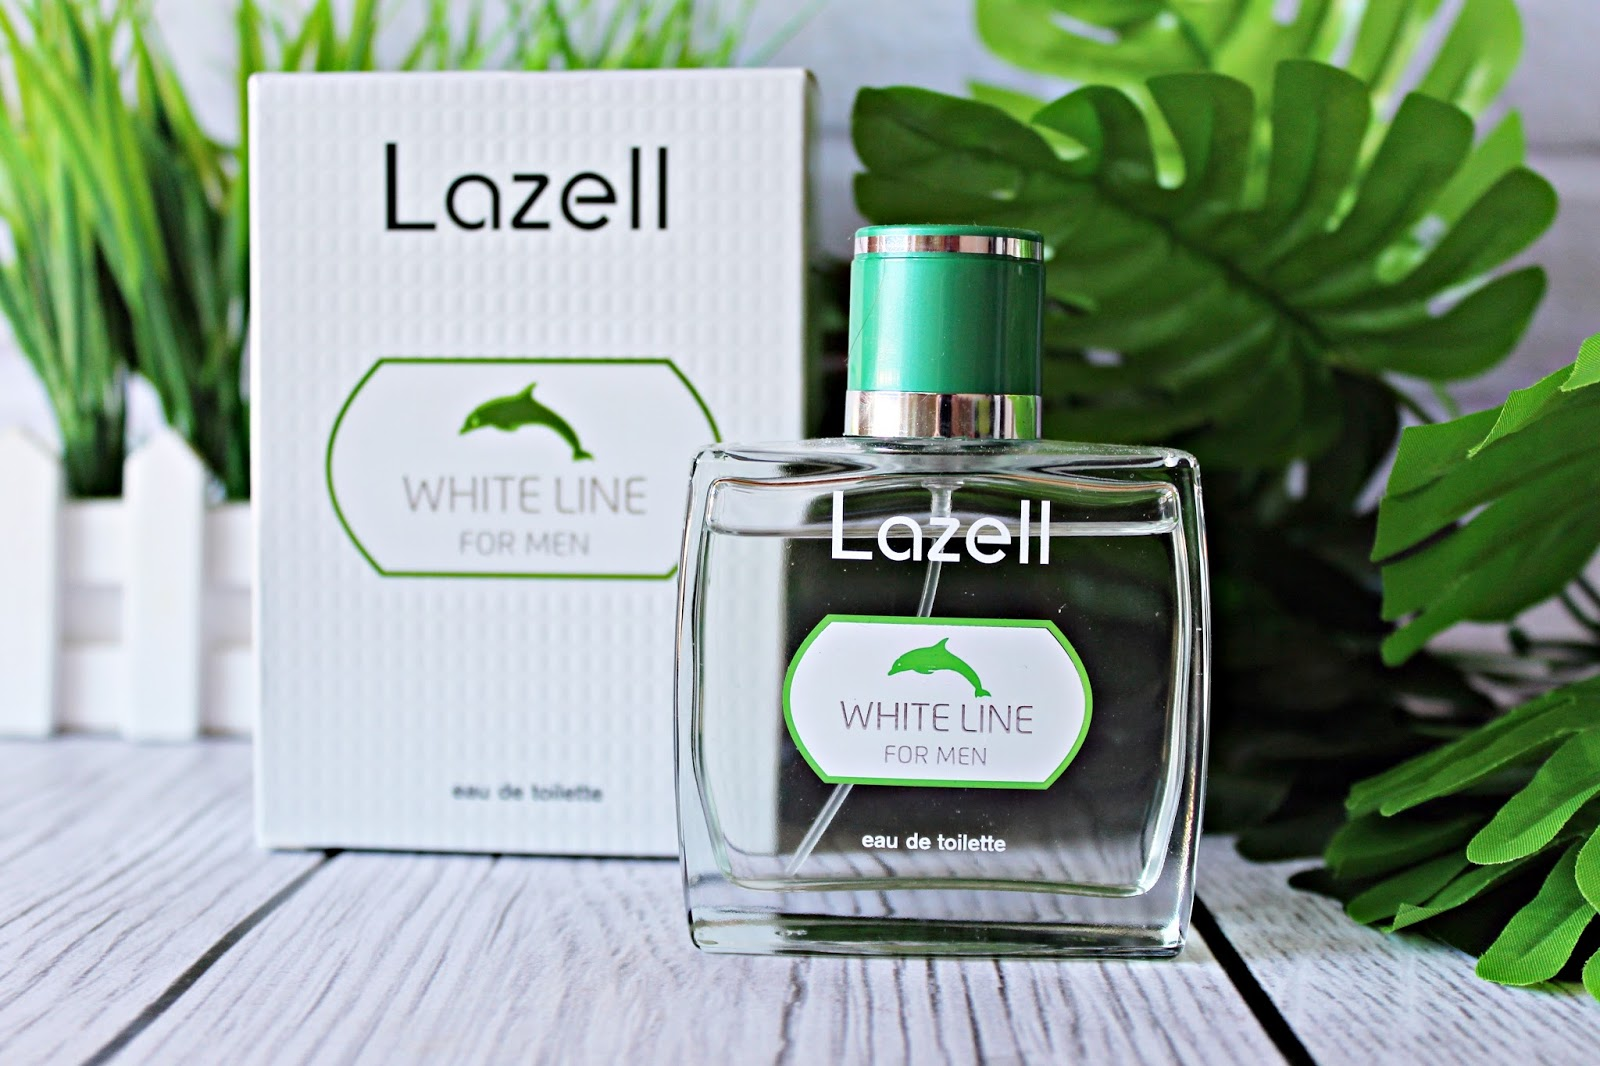 Lazell White Line for men